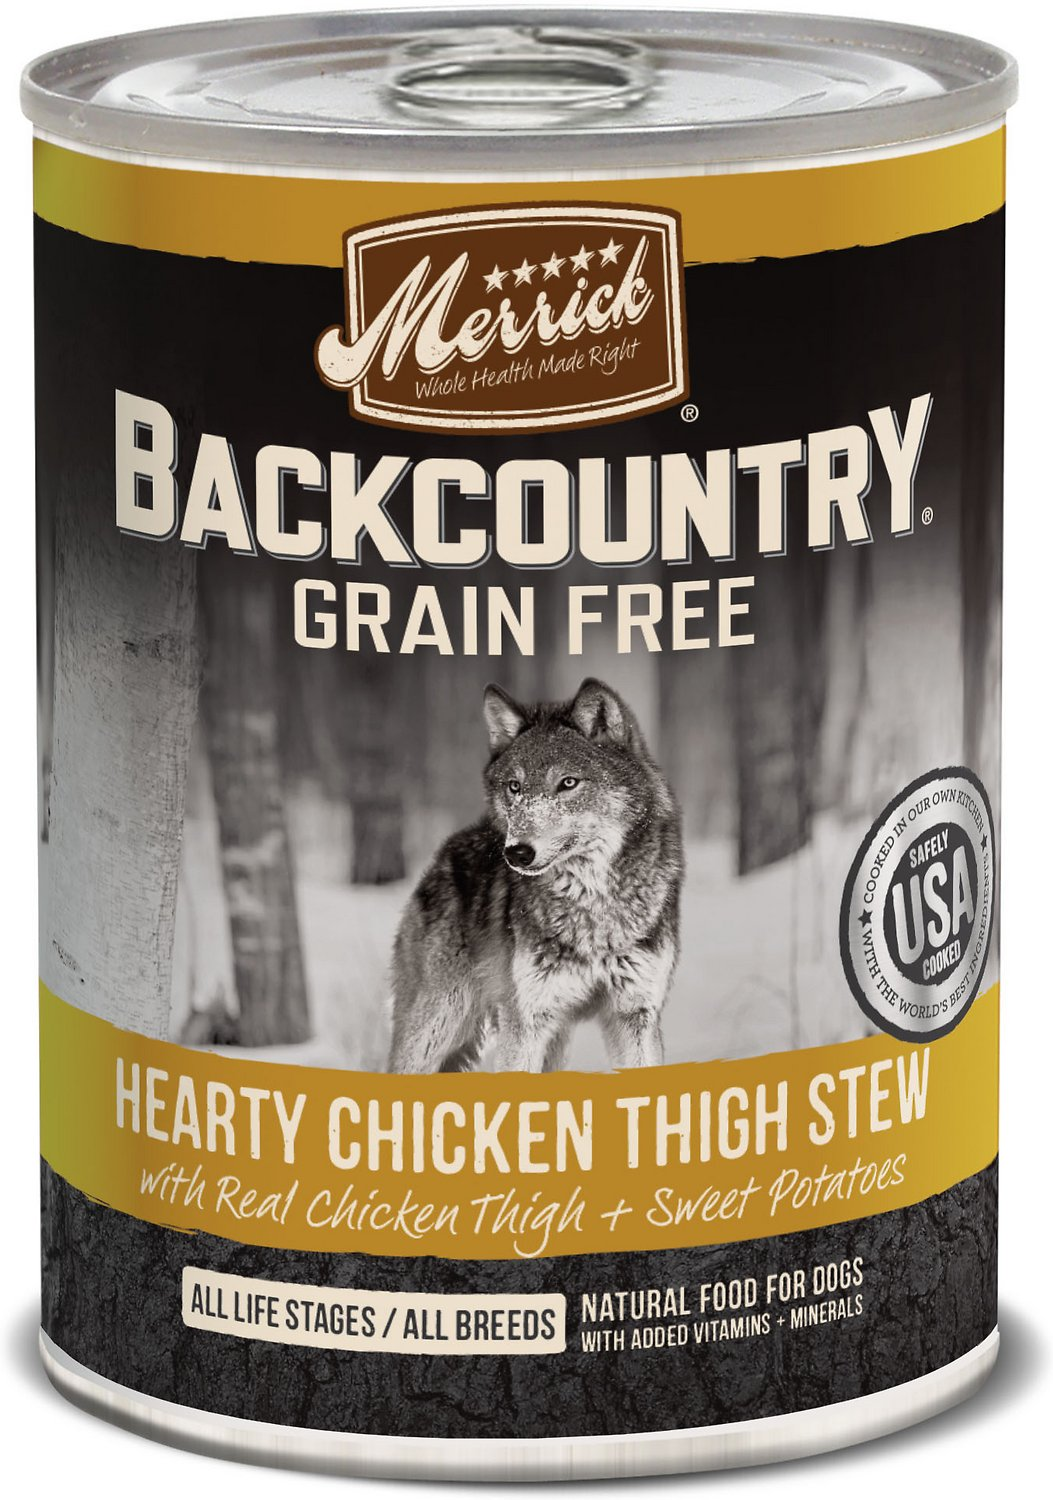 Merrick Backcountry Grain-Free Hearty Chicken Thigh Stew Canned Dog Food, 12.7-oz